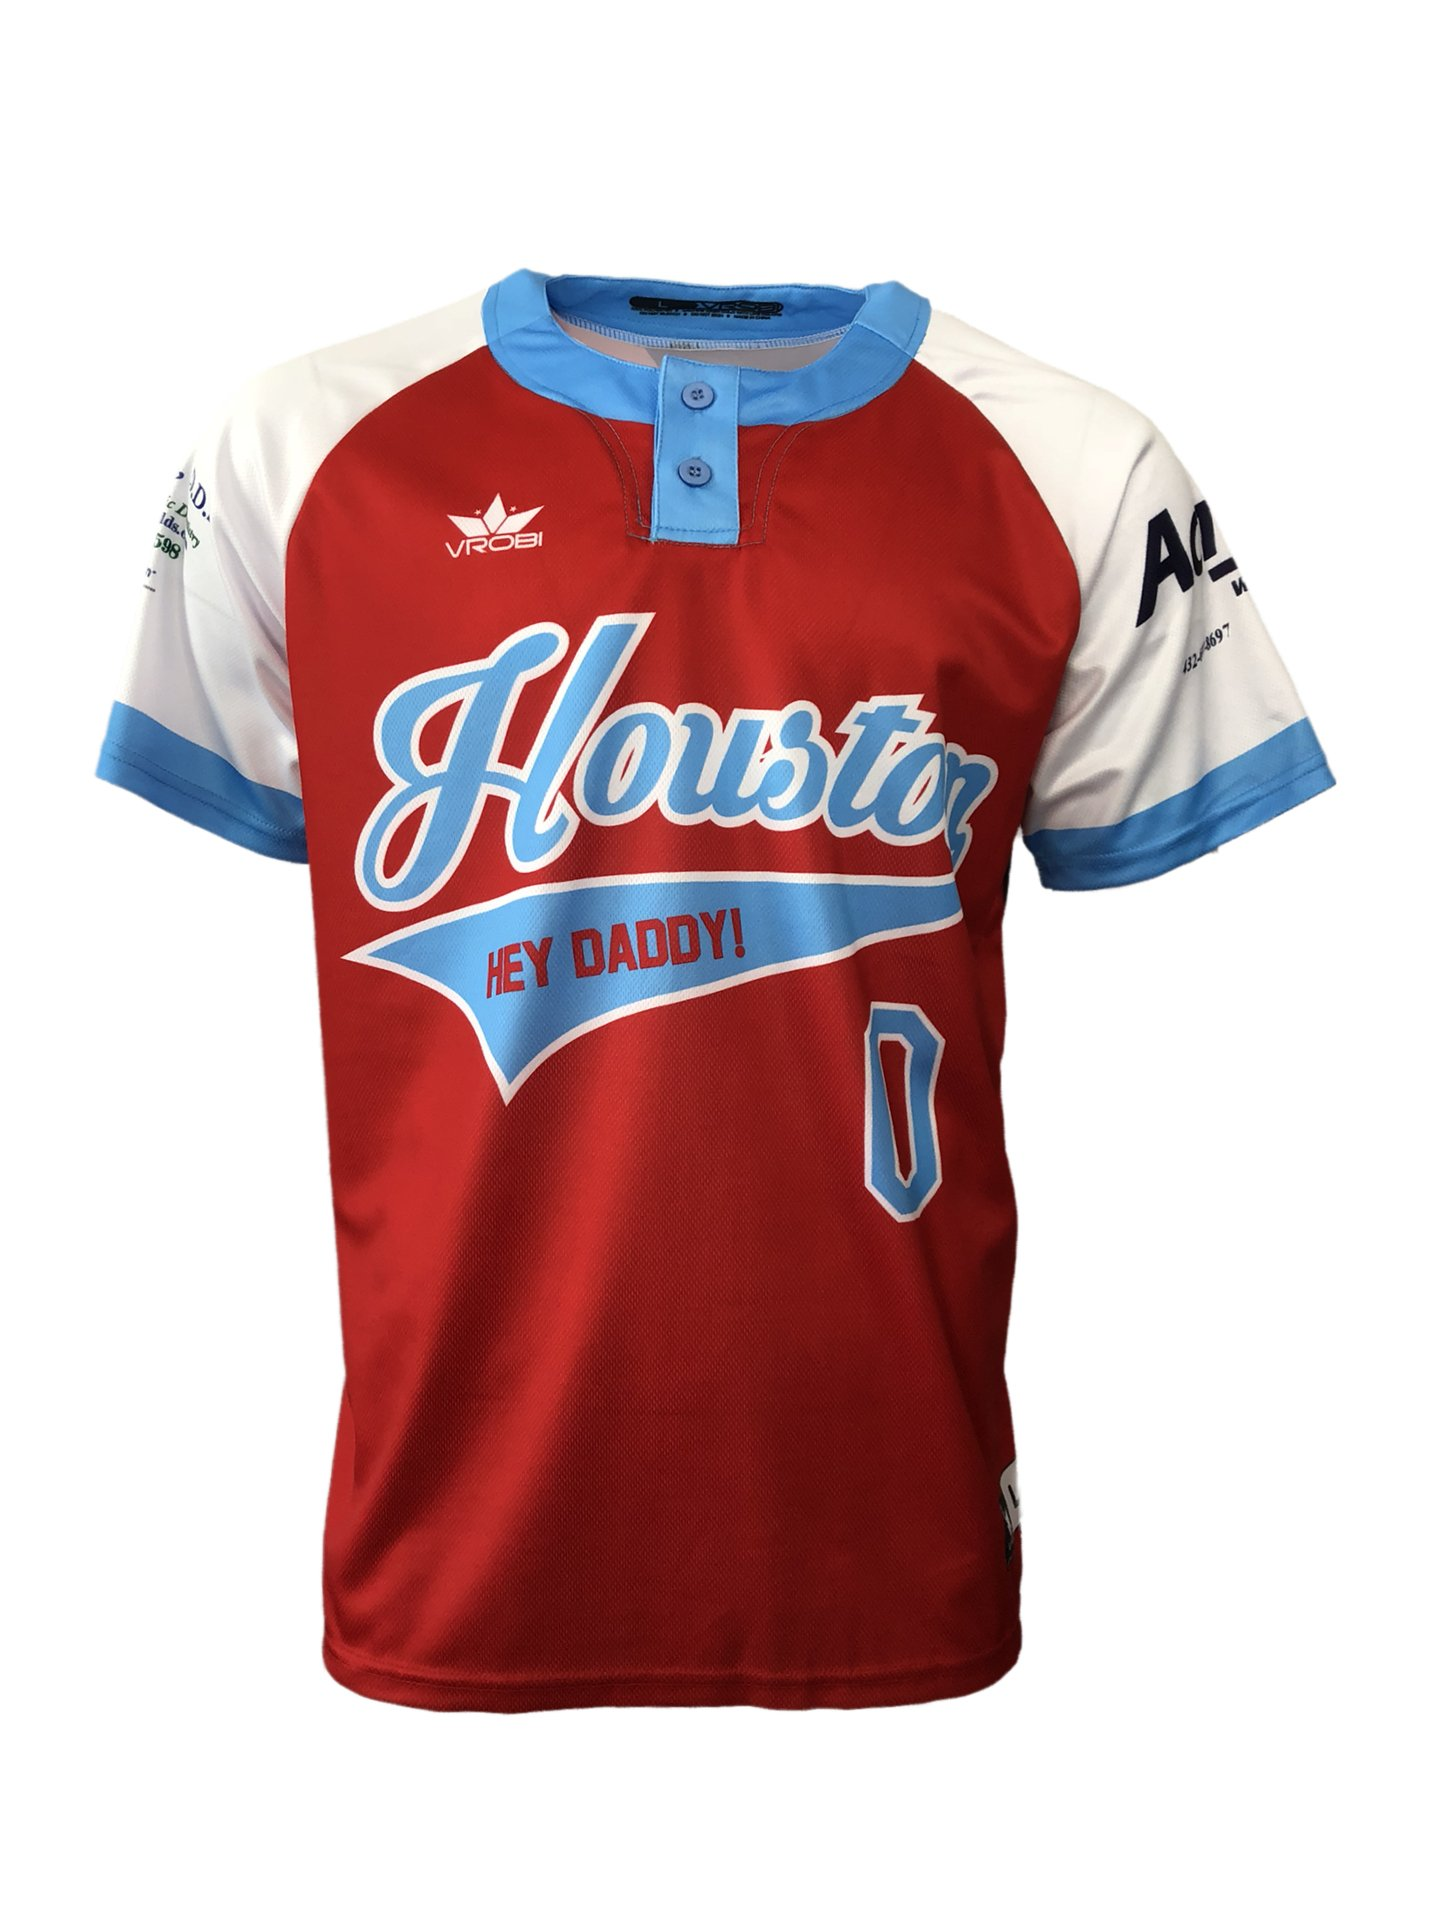 5 Two button slow pitch softball jersey